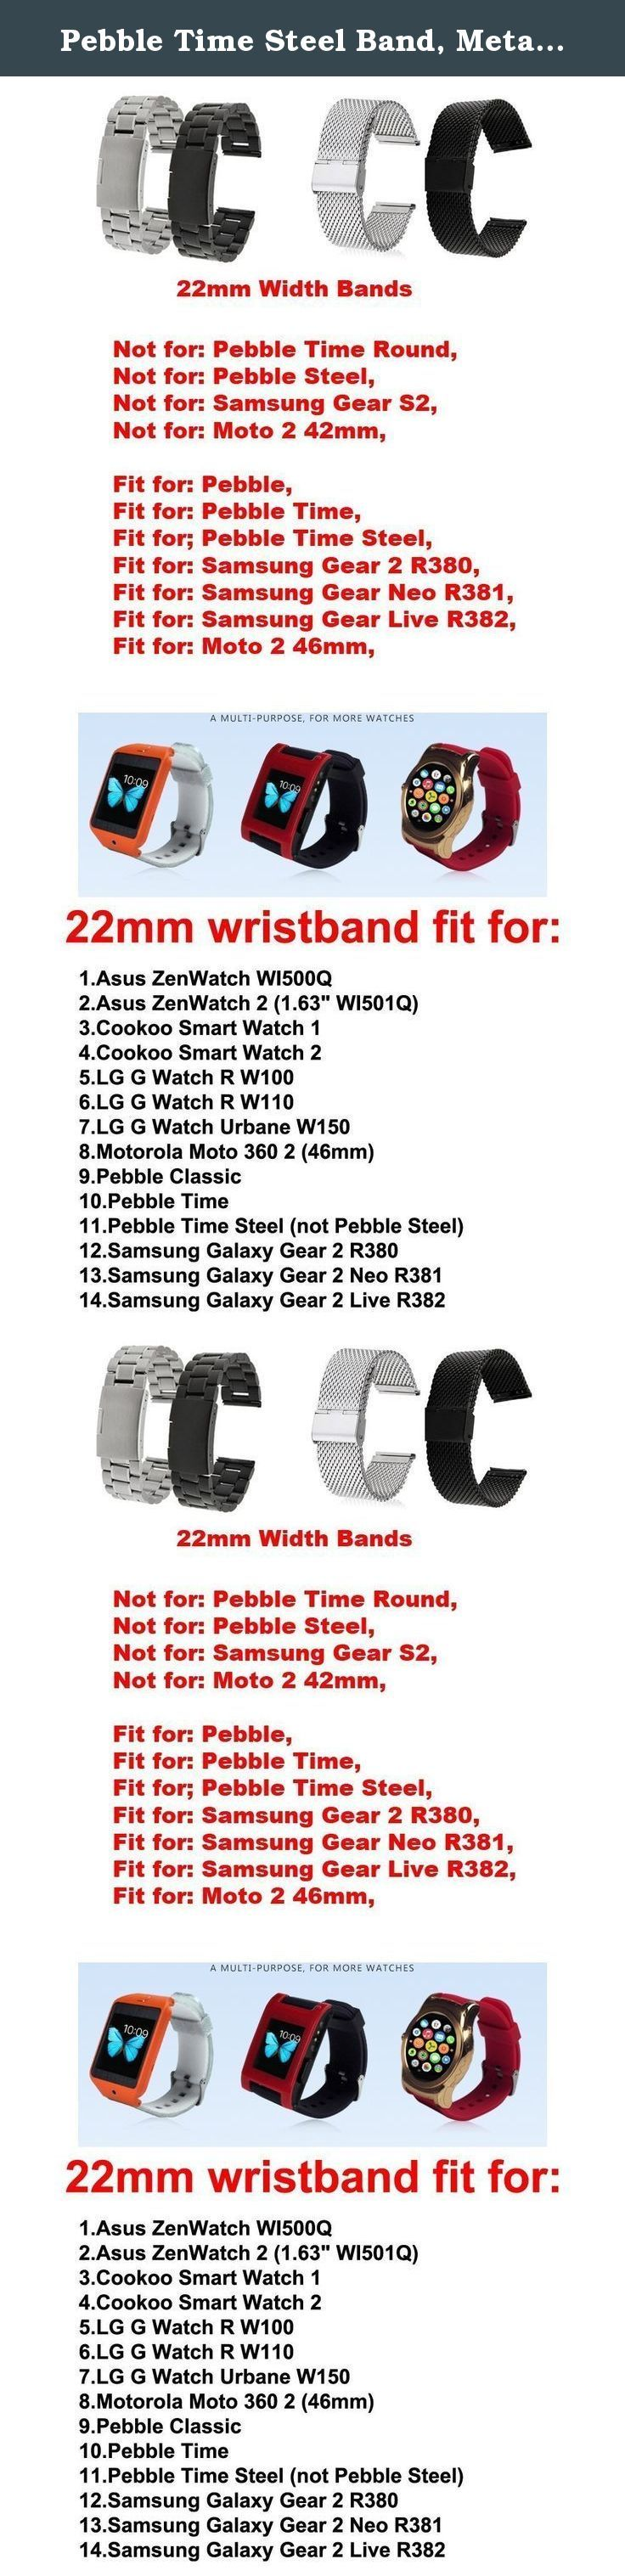 Pebble Time Steel Band, Metal, Replacement Stainless Steel Watch Strap for Pebble Time Steel (NOT Pebble Steel) Smart Watch /No Watch - MeshSilver. Metal Watchband/ Stainless Steel Strap fits for (Pebble Time Steel) Smart Watch, Please NOTE: Not Pebble Steel With Prefect workmanship, fashion design, comfortable feeling, stylish look, giving you noble wearing experience, easy to use, come with a set of tools Easy to install and remove; Width: 22mm; Length adjustable length; Best metal…